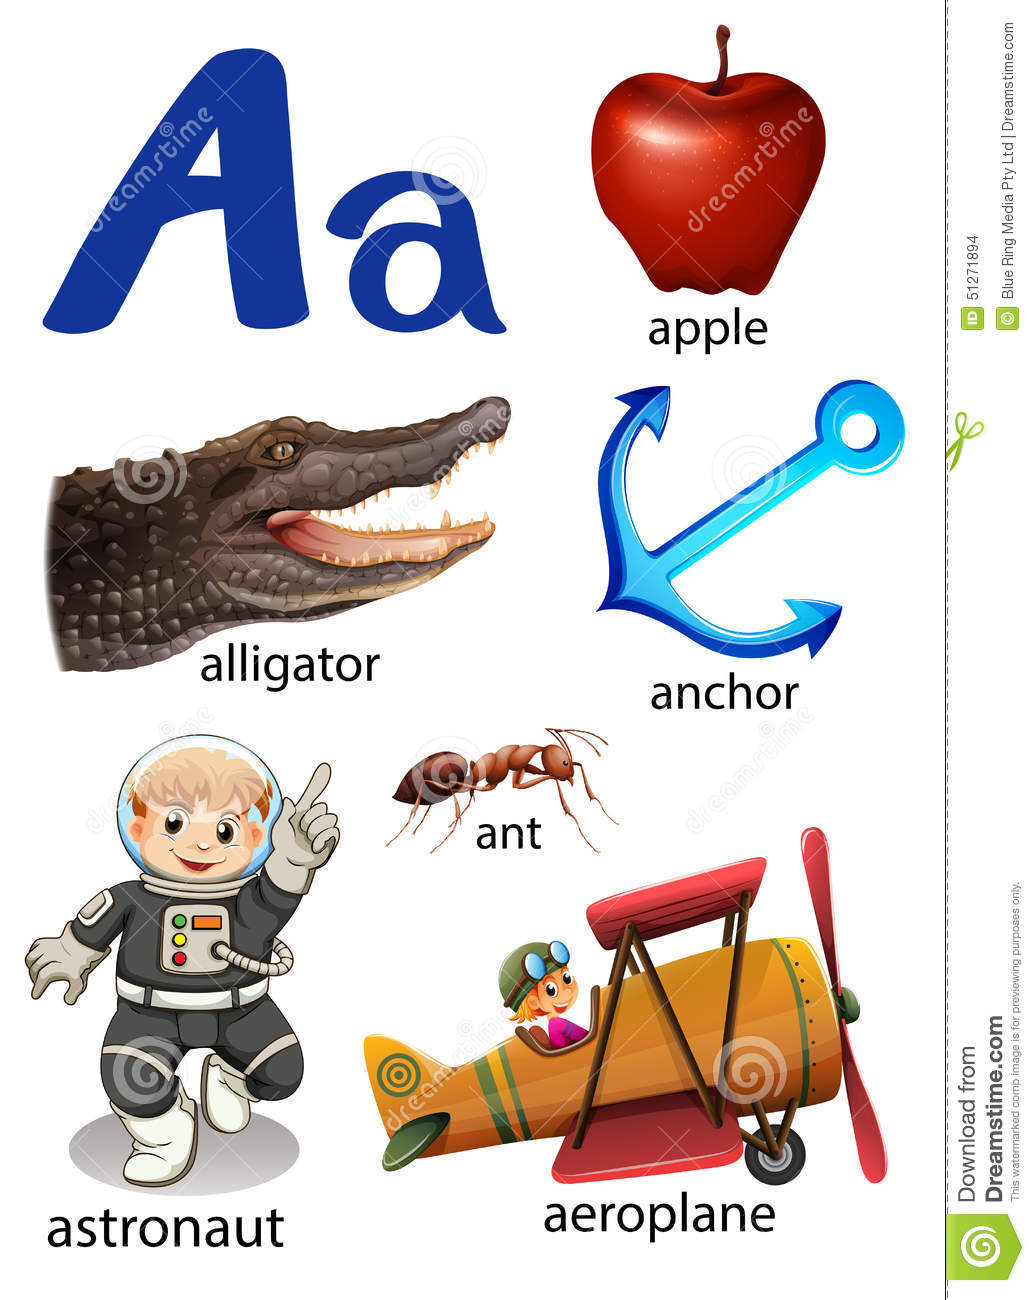 Things that start with the letter A on a white background.